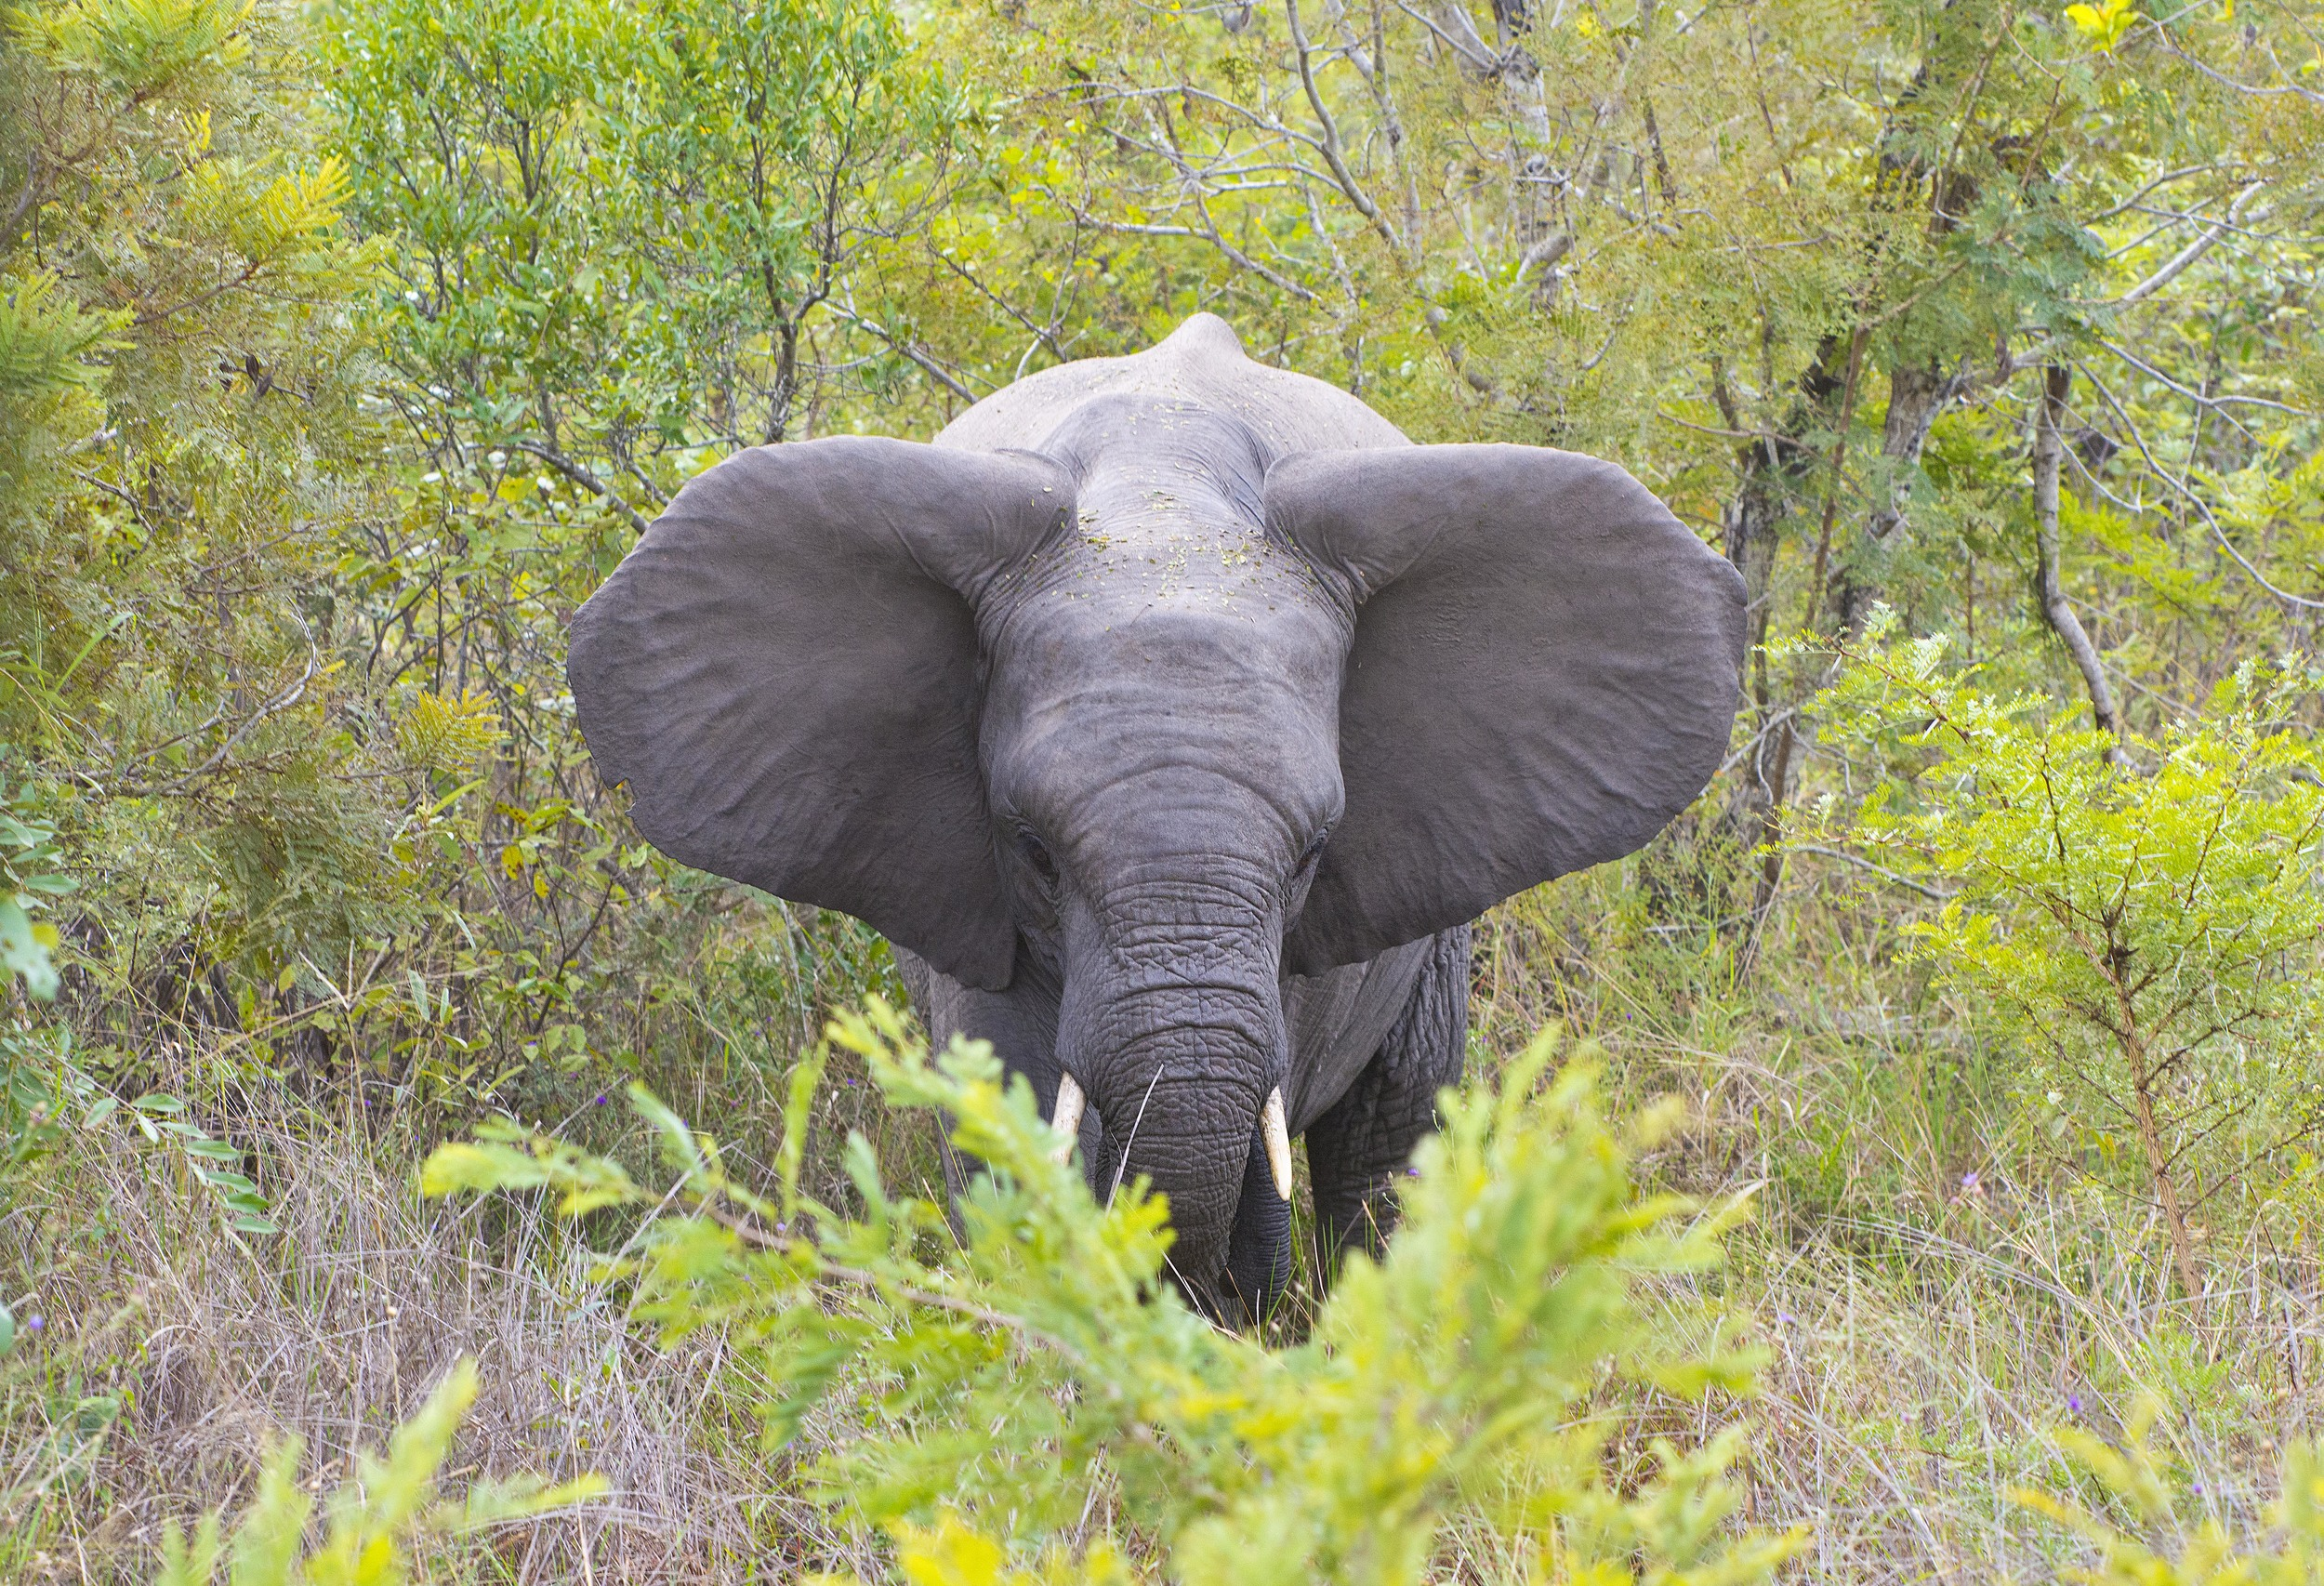 130420_DSC4328 Elephant with Ears Out_1.jpg